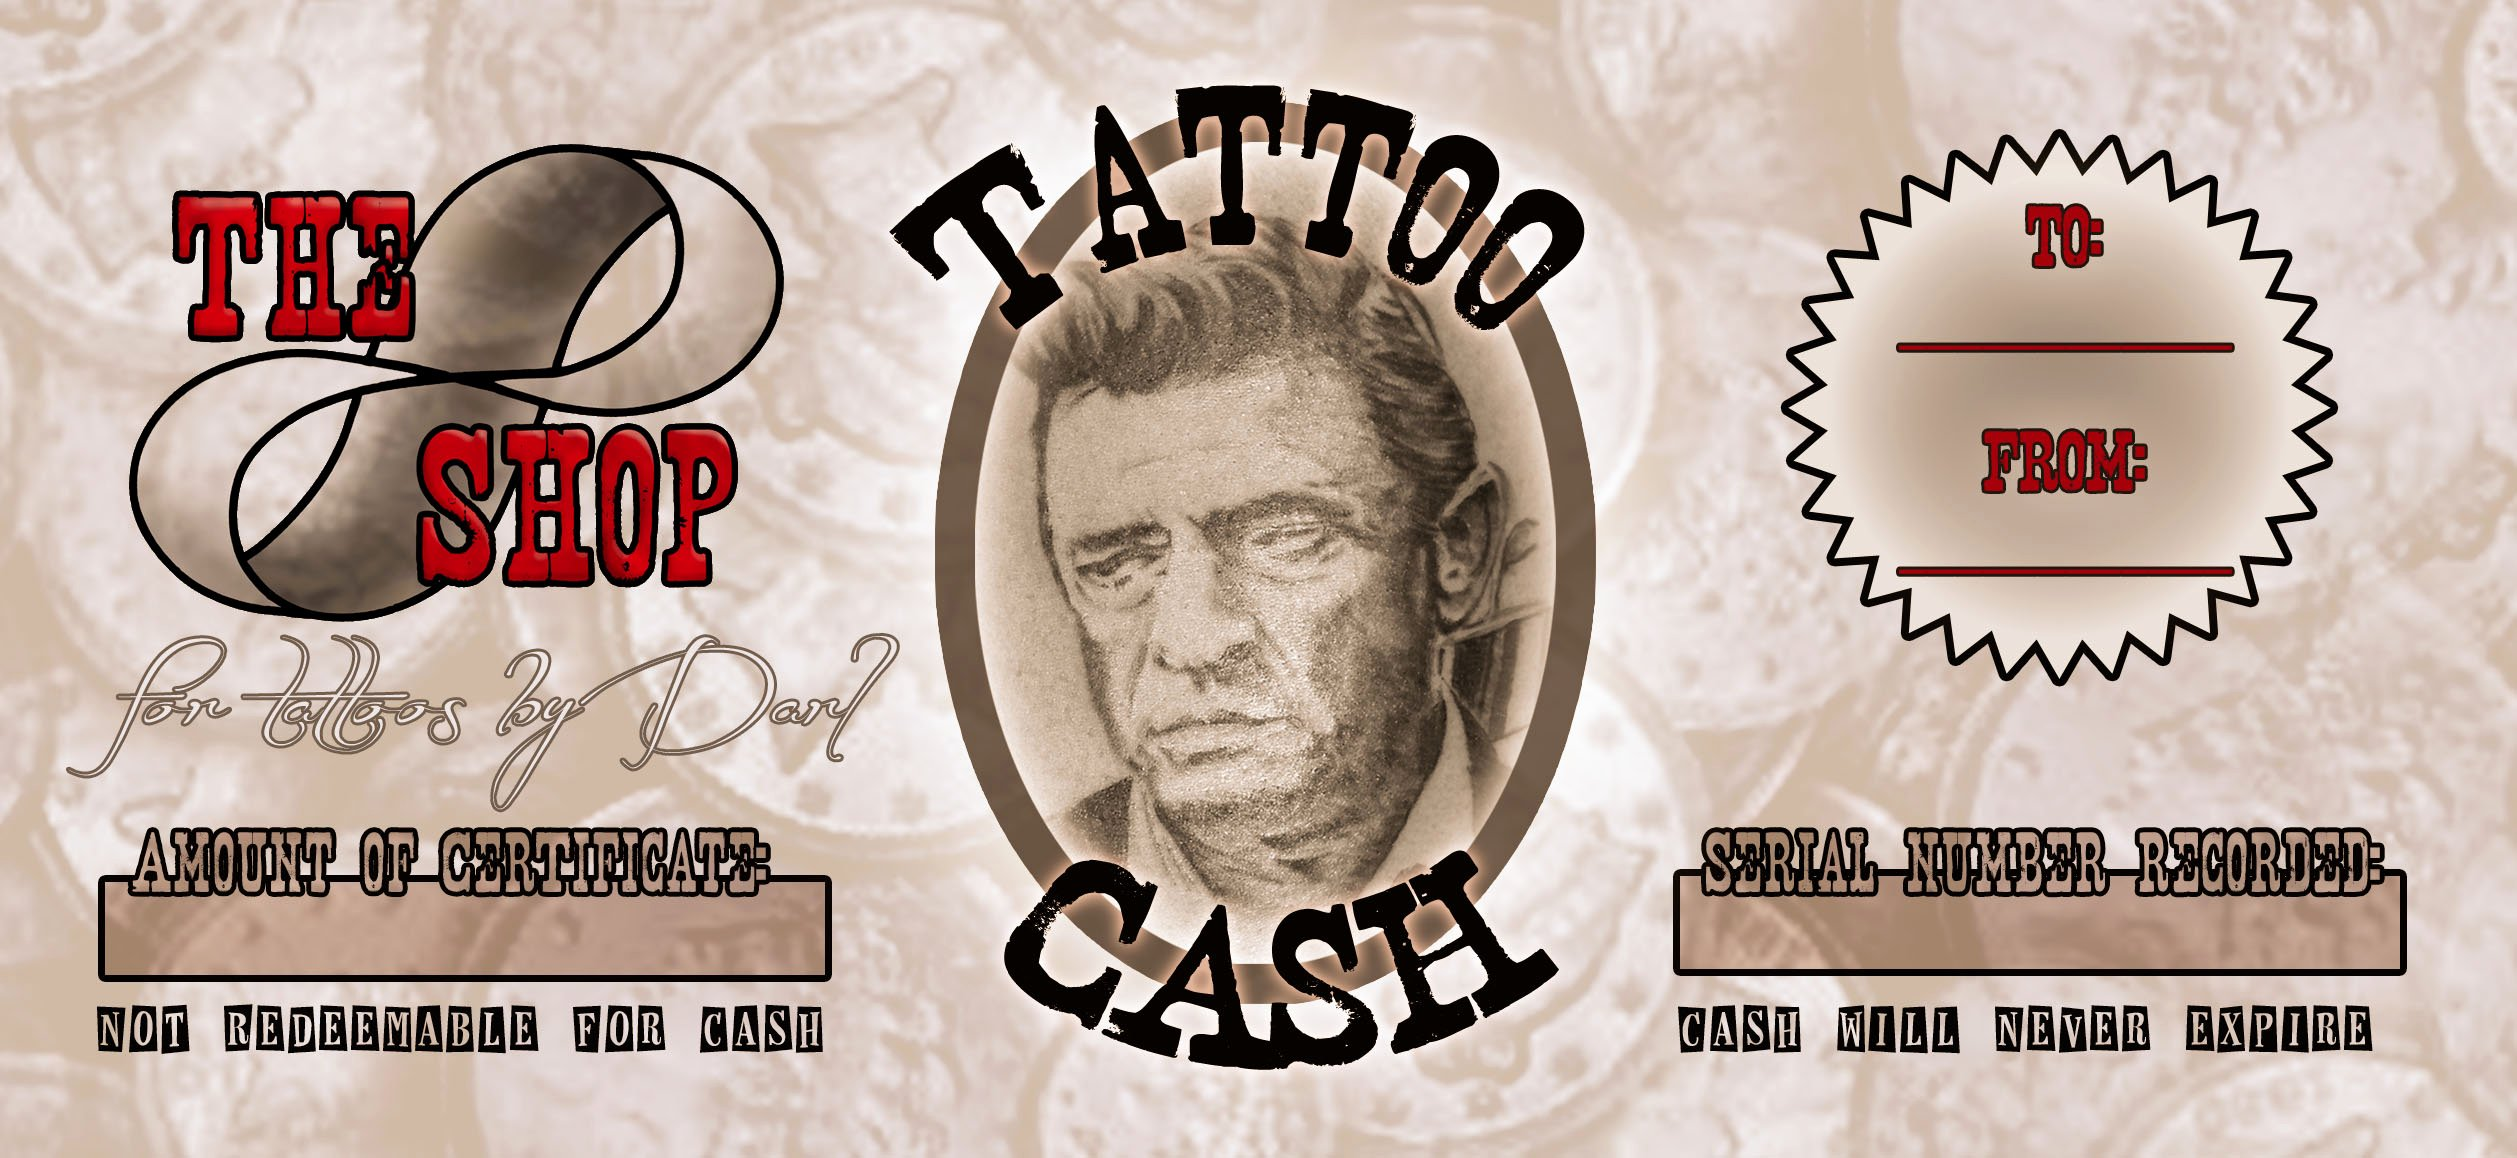 Tattoo Gift Certificate Template Free Unique Gift Certificates Info – the Shop Custom Tattoos